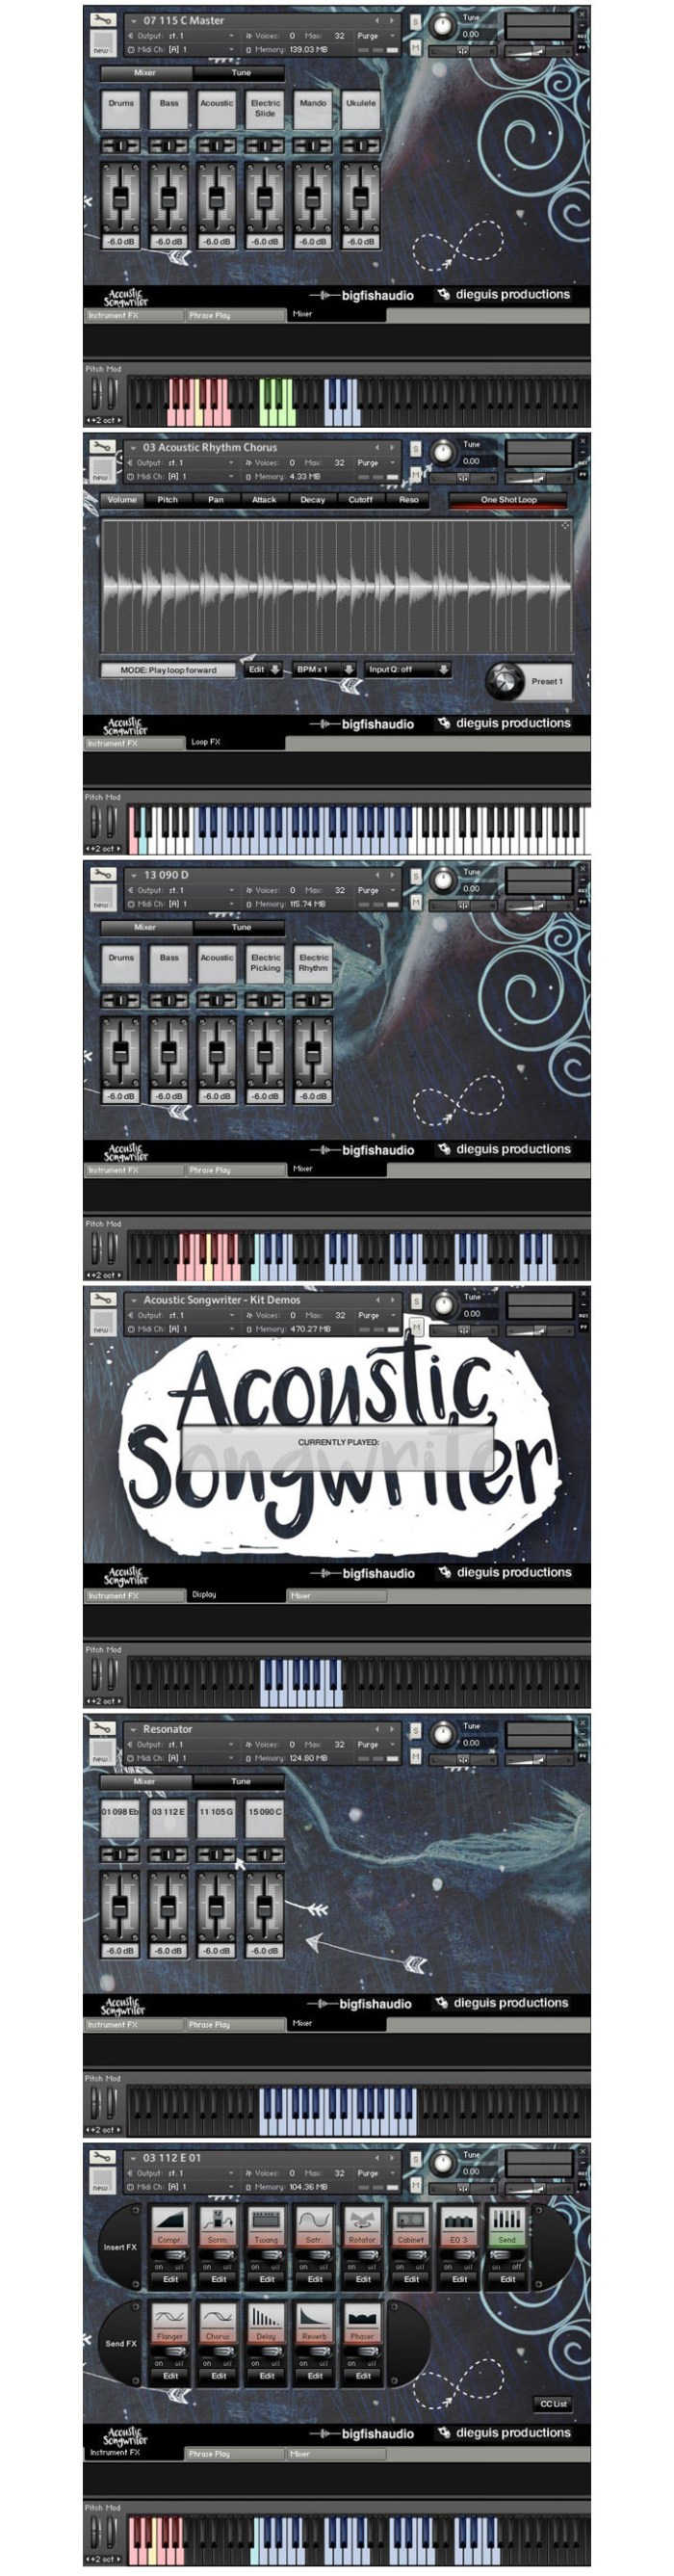 dieguis_productions_acoustic_songwriter_multiformat_pc_mac